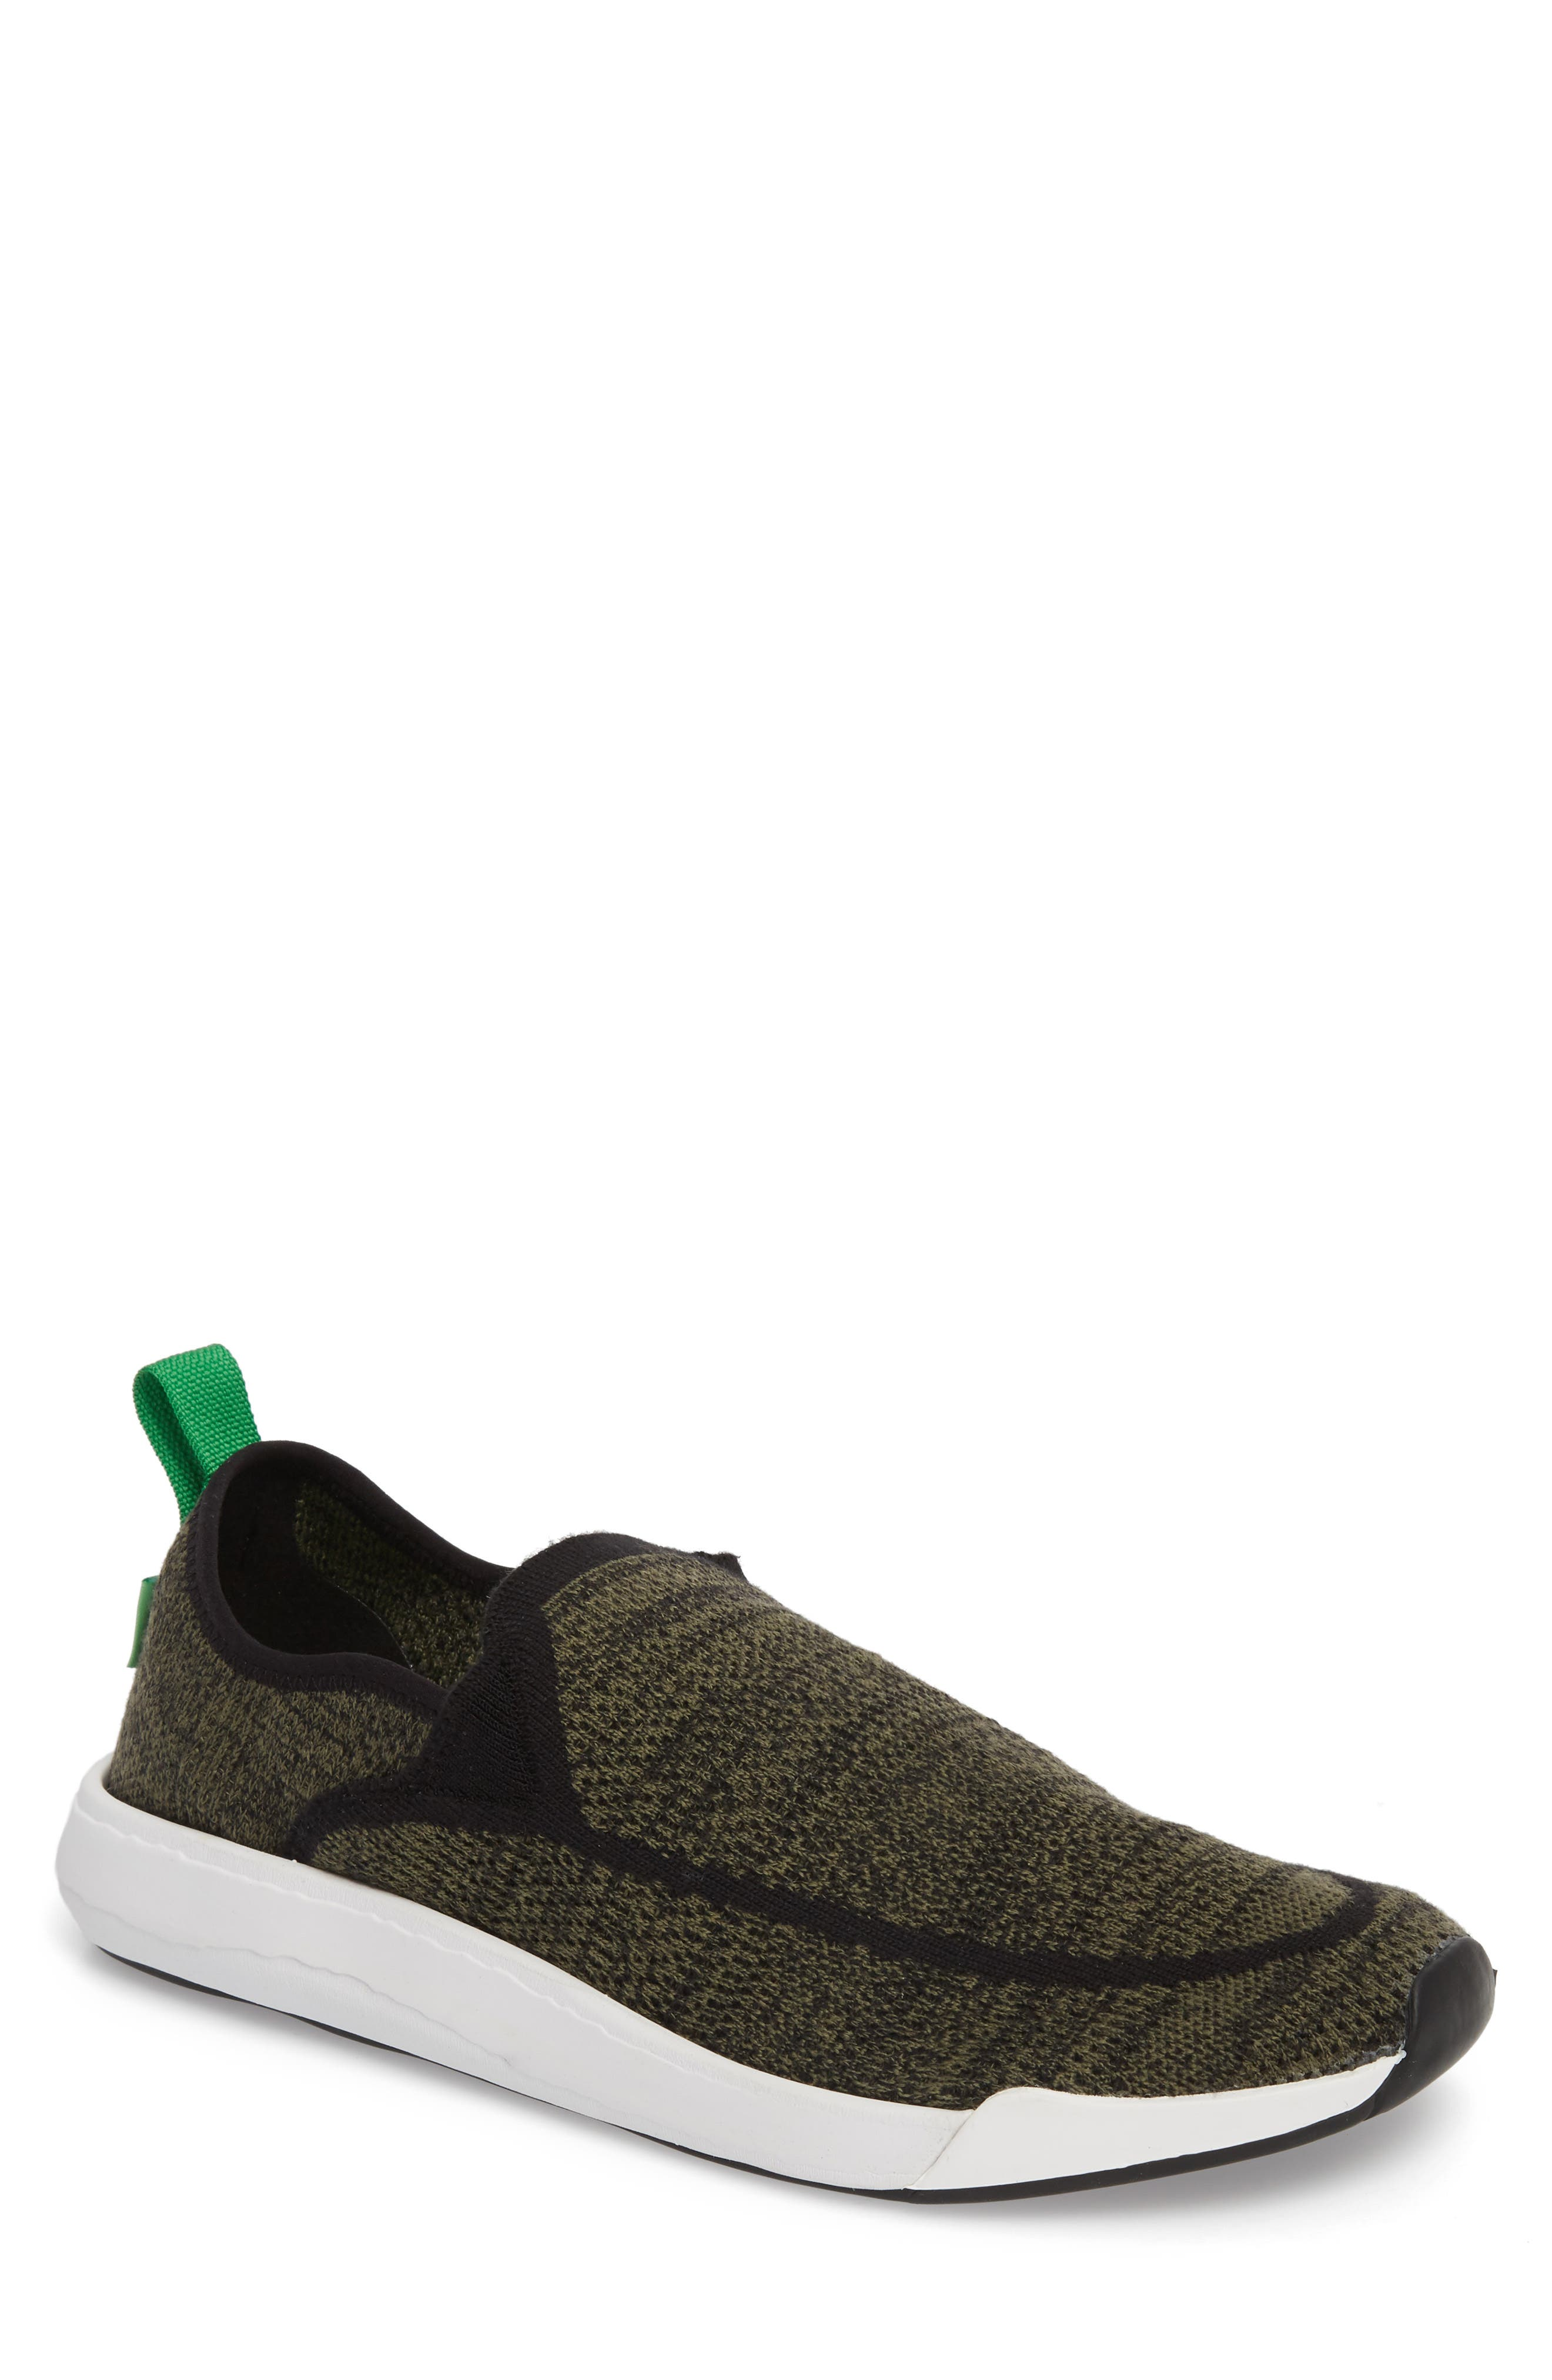 Chiba Quest Knit Slip-On Sneaker,                             Main thumbnail 1, color,                             OLIVE